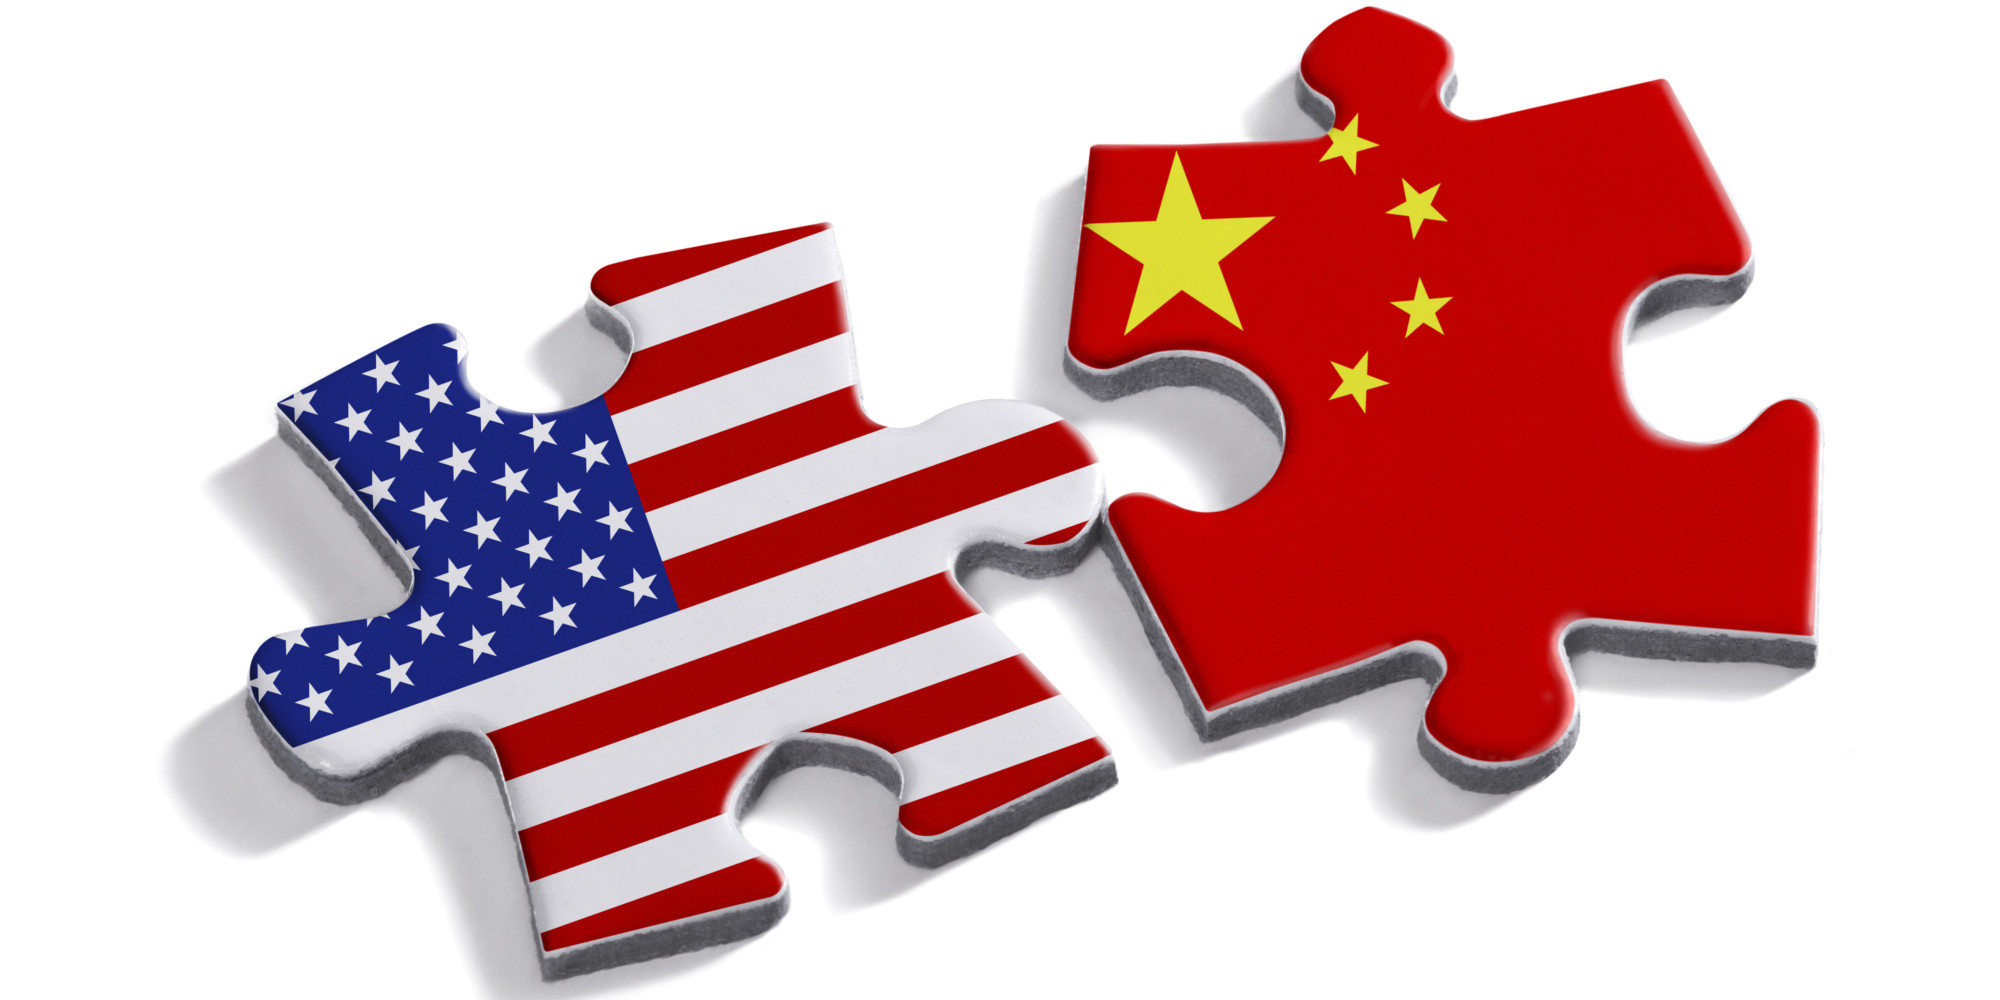 America and china relations